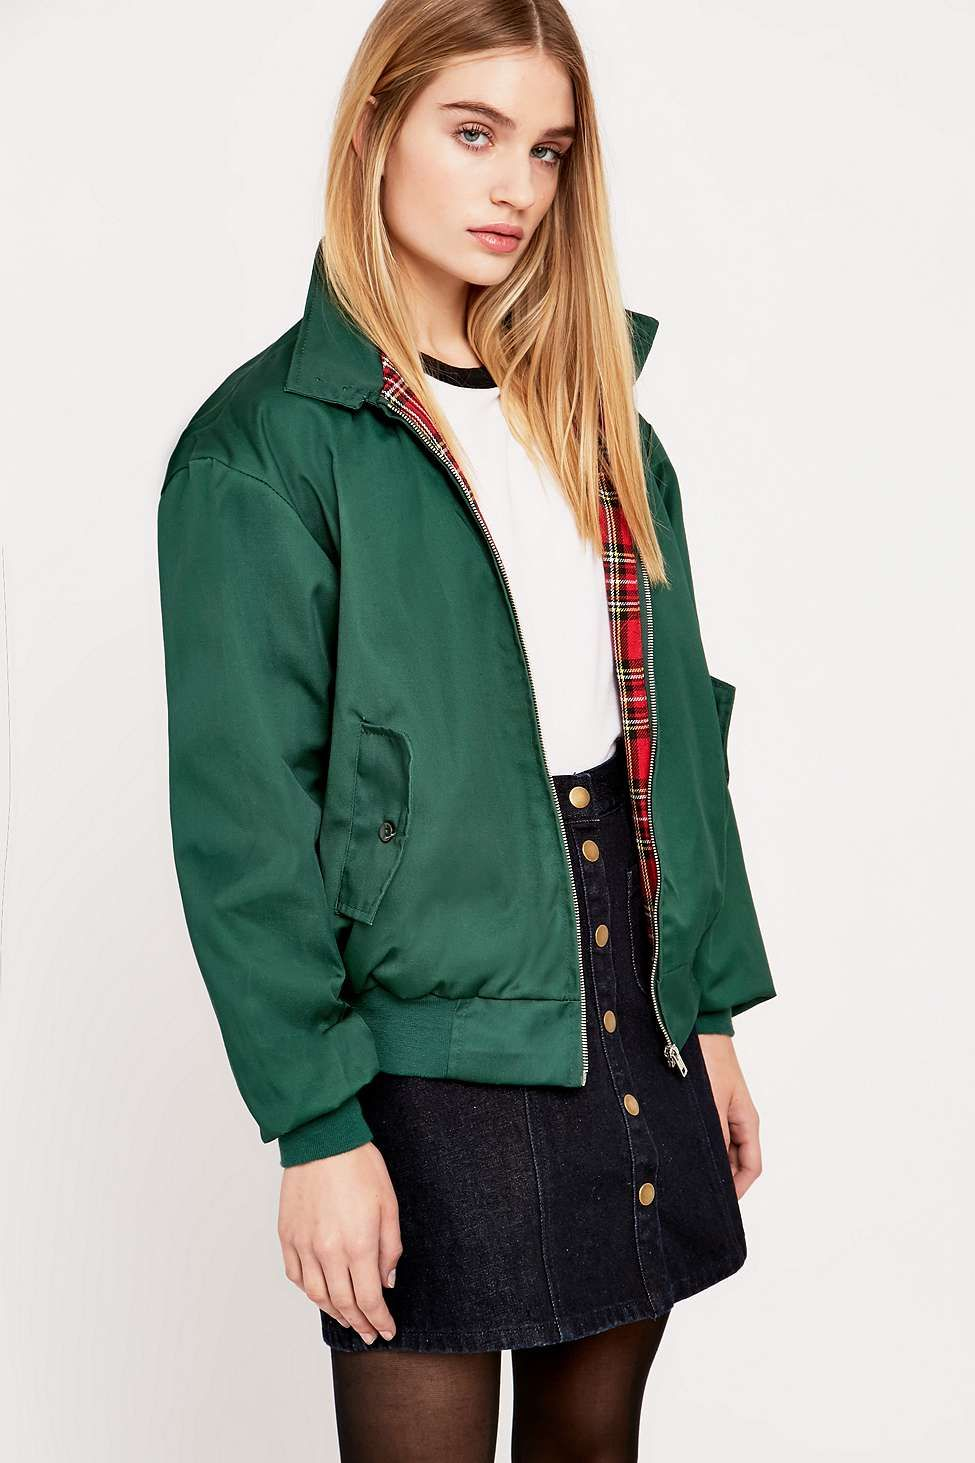 Urban Renewal Vintage Surplus Green Harrington Jacket